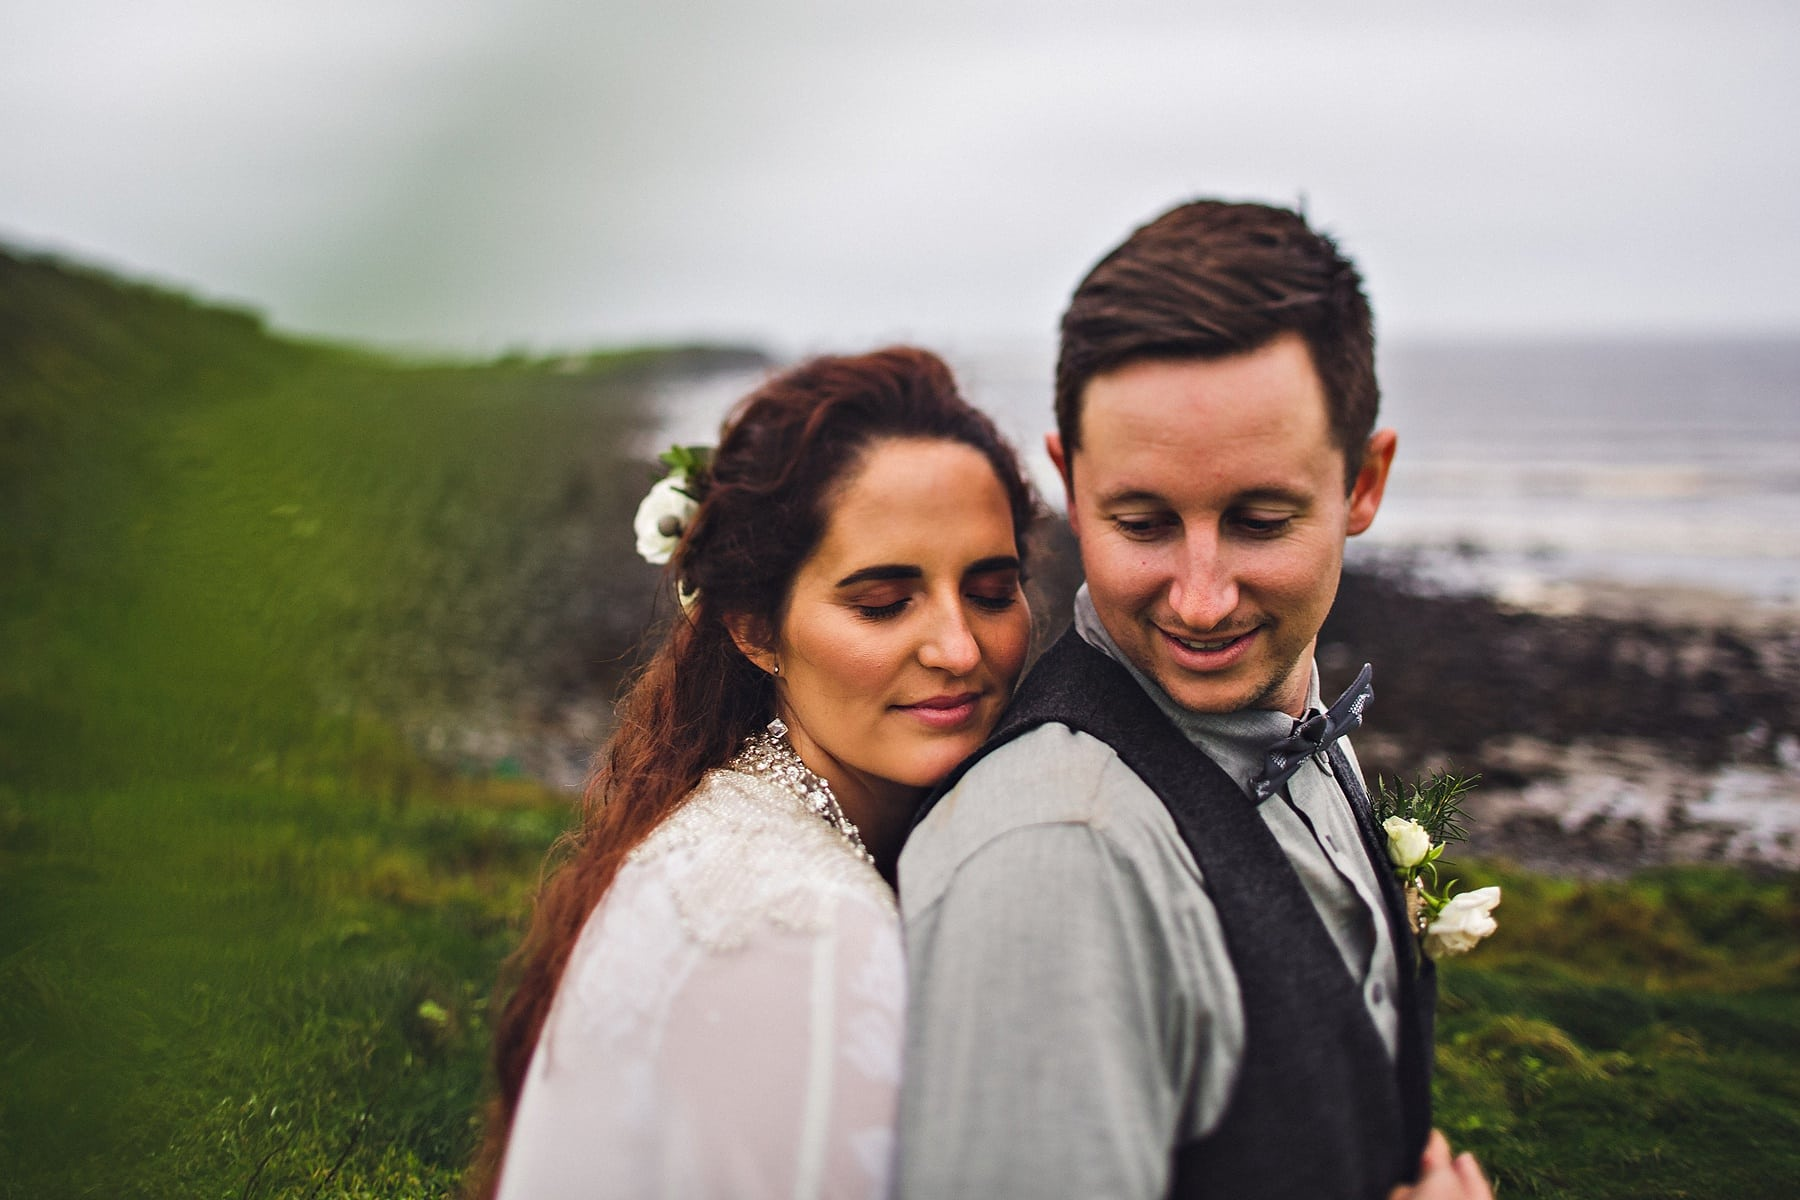 Elopement Cliffs of Moher Ireland Wedding Photographer,